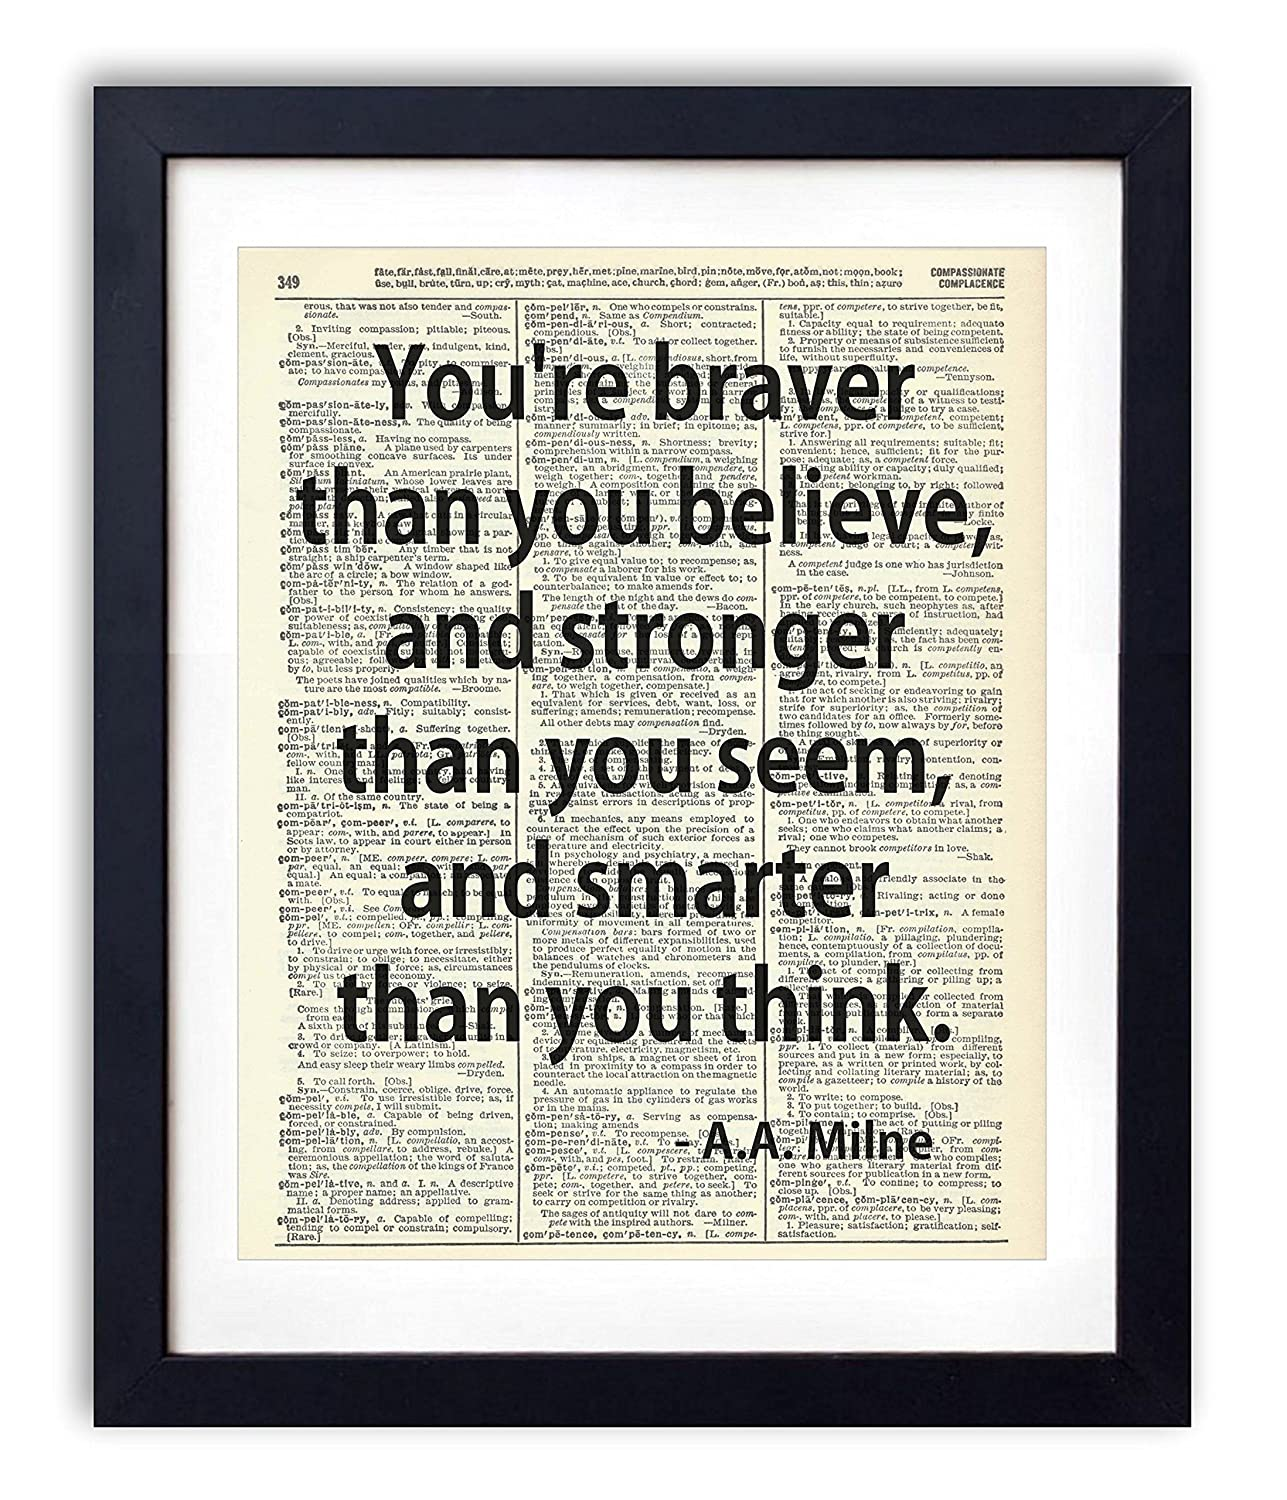 You're Braver Than You Believe Quote Upcycled Wall Art Vintage Dictionary Art Print 8x10 inches / 20.32 x 25.4 cm Unframed